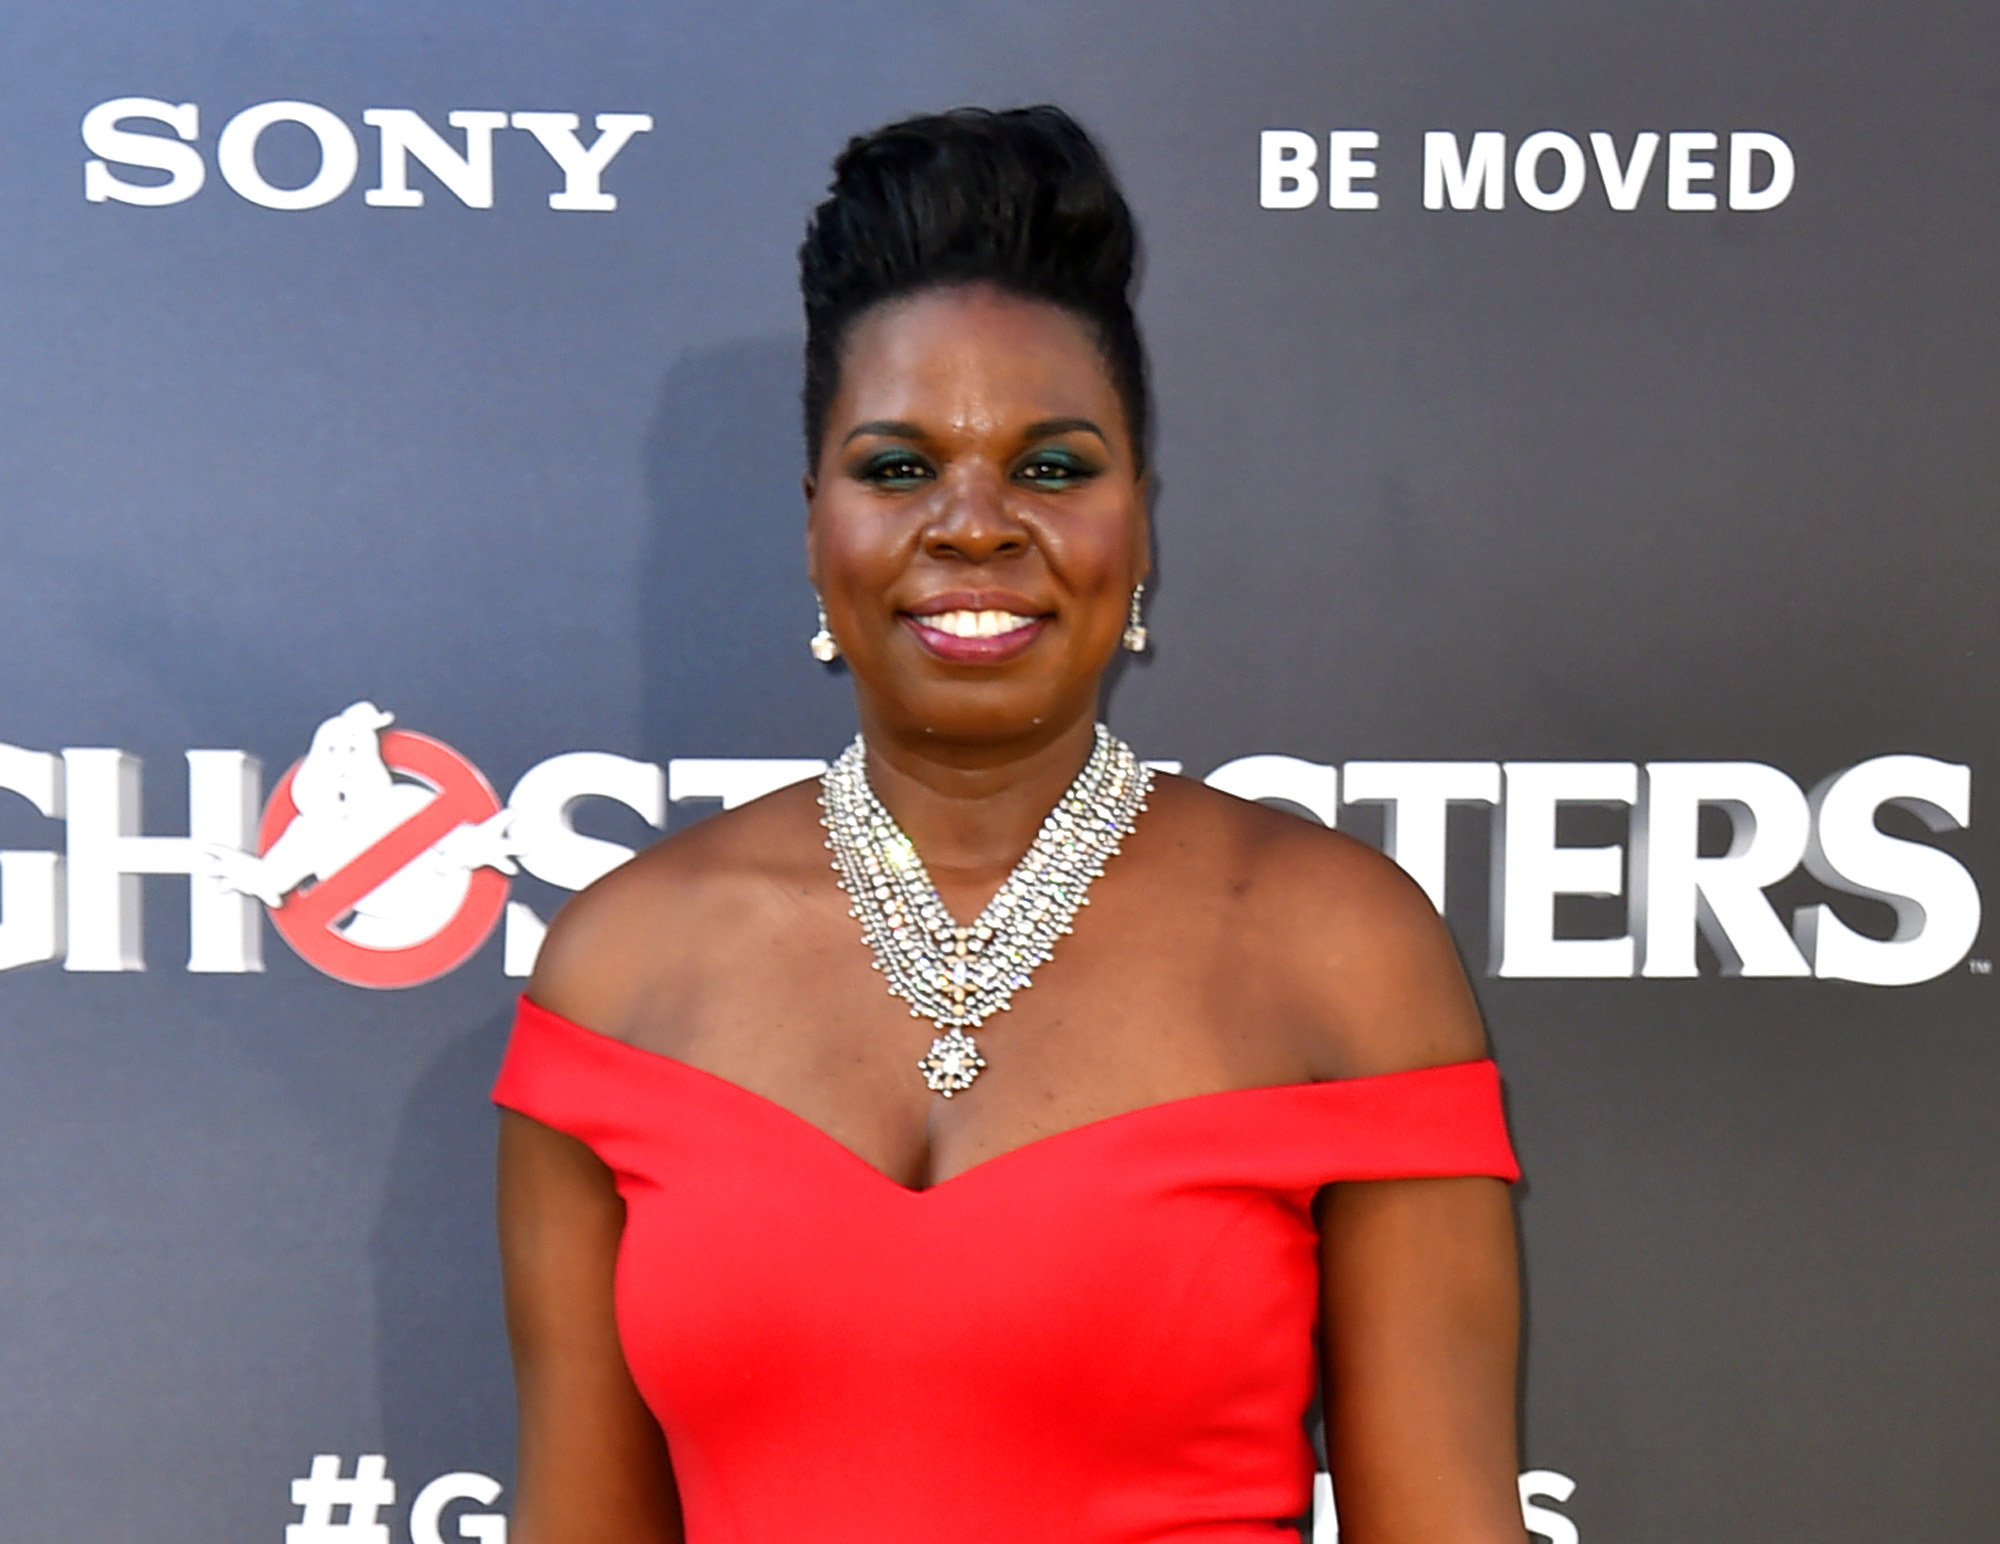 Leslie Jones Slams 'Insulting' New 'Ghostbusters' Movie: 'Such a Dick Move'